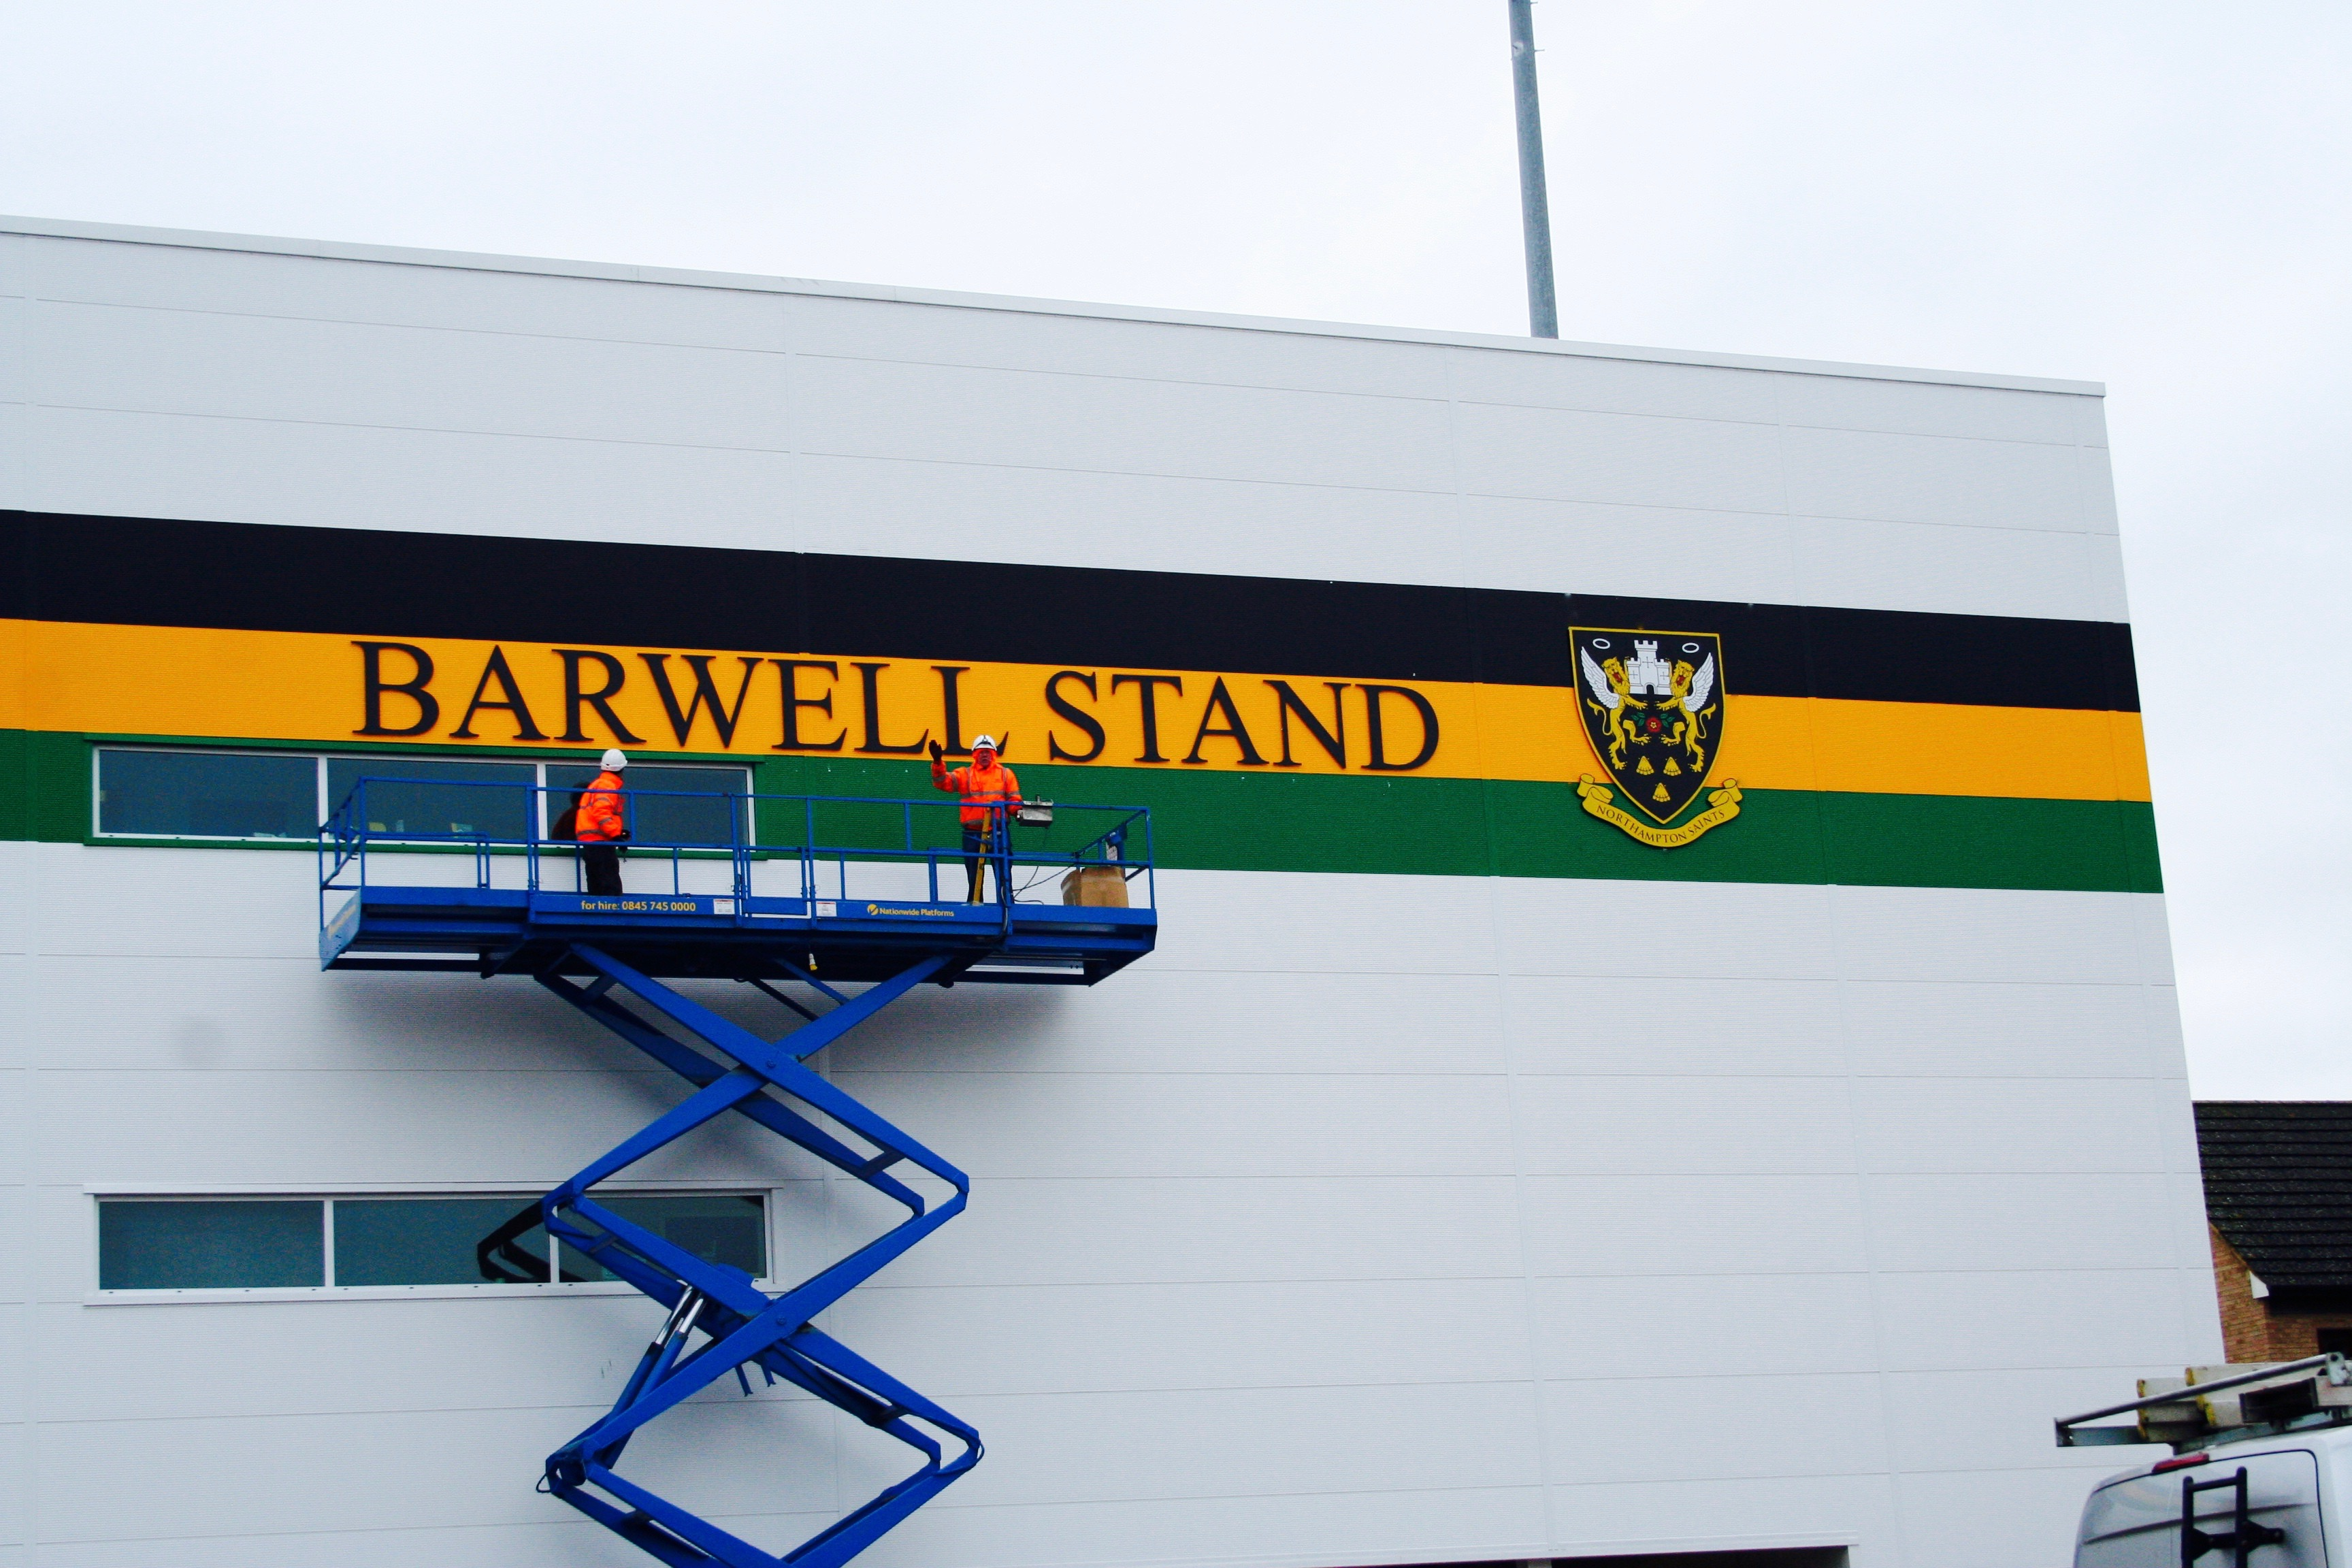 BARWELL STAND SIGN